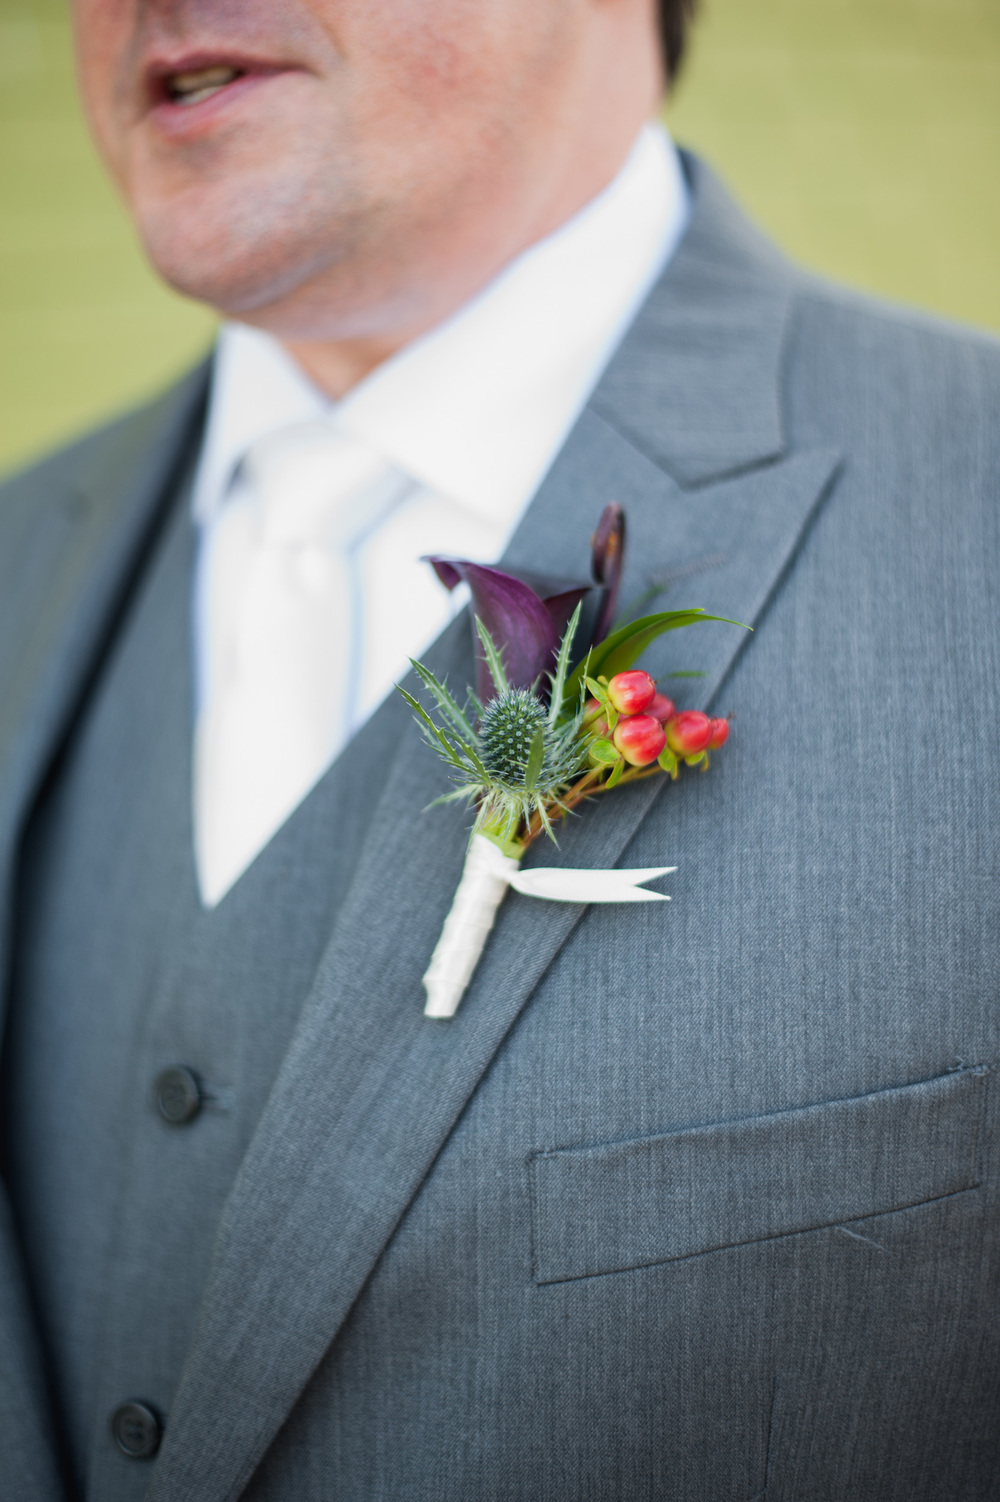 Groom's boutonierre fall wedding calla lily scabiosa berries